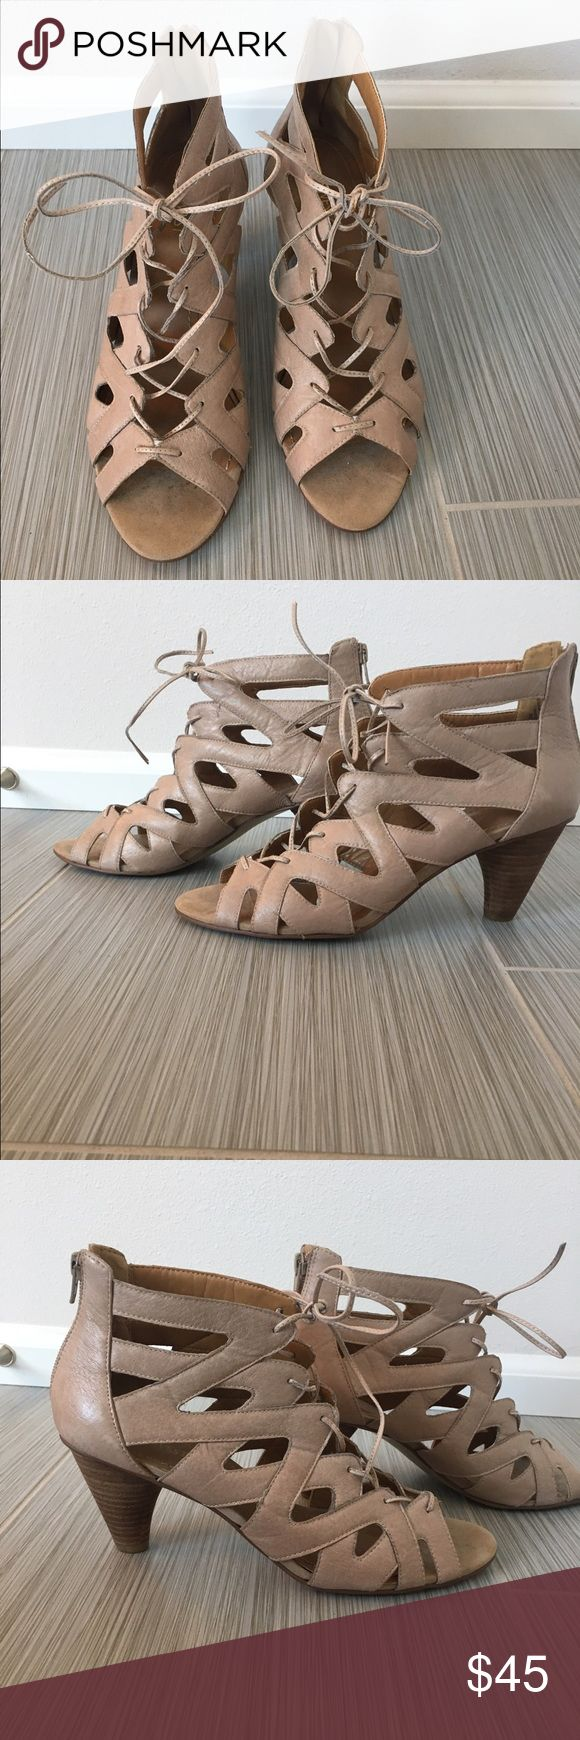 Boho sandals Heeled leather sandals. Looks great with free people style clothing. Worn once. Nine West Shoes Sandals